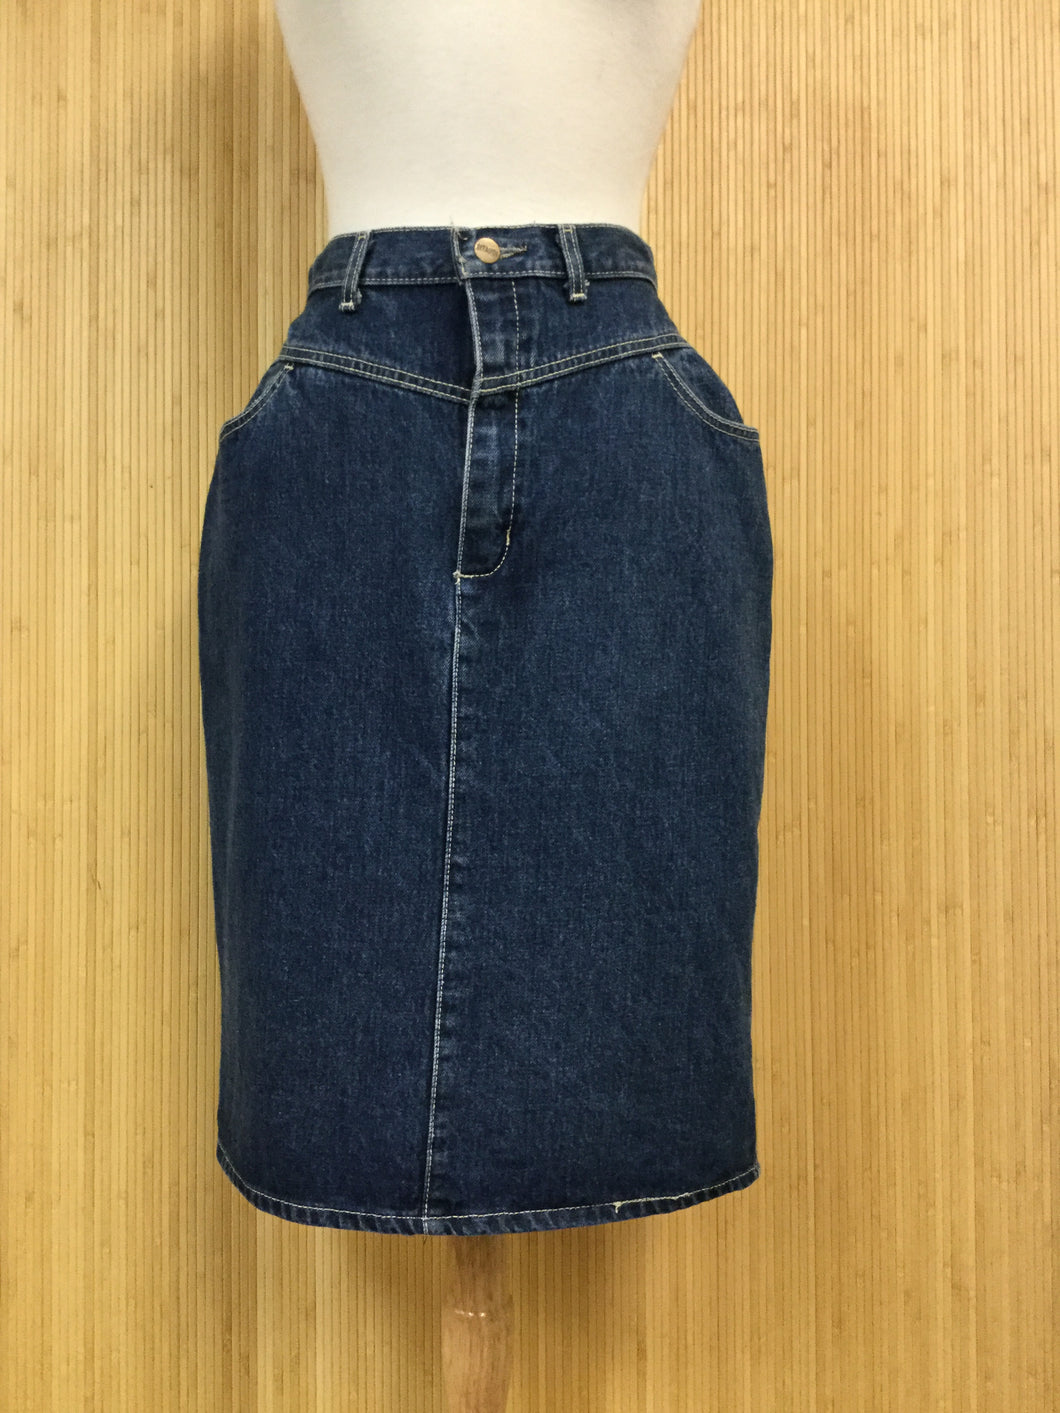 Gitano Denim Skirt (M)